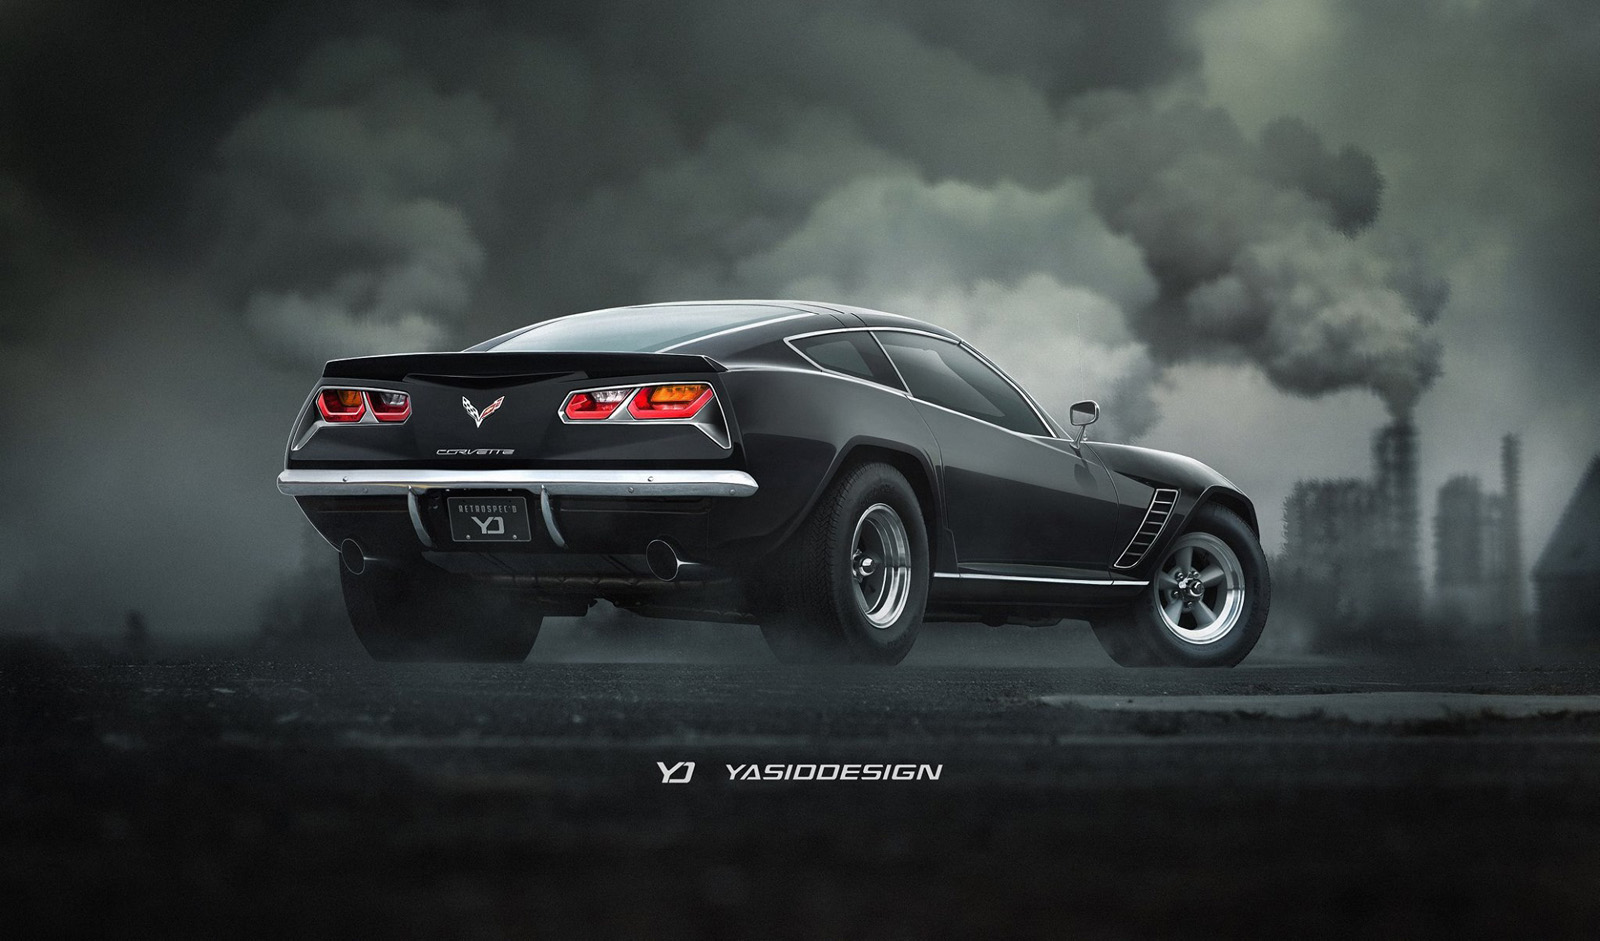 What Would It Look Like If The Corvette C7 Went Old-School? | Carscoops